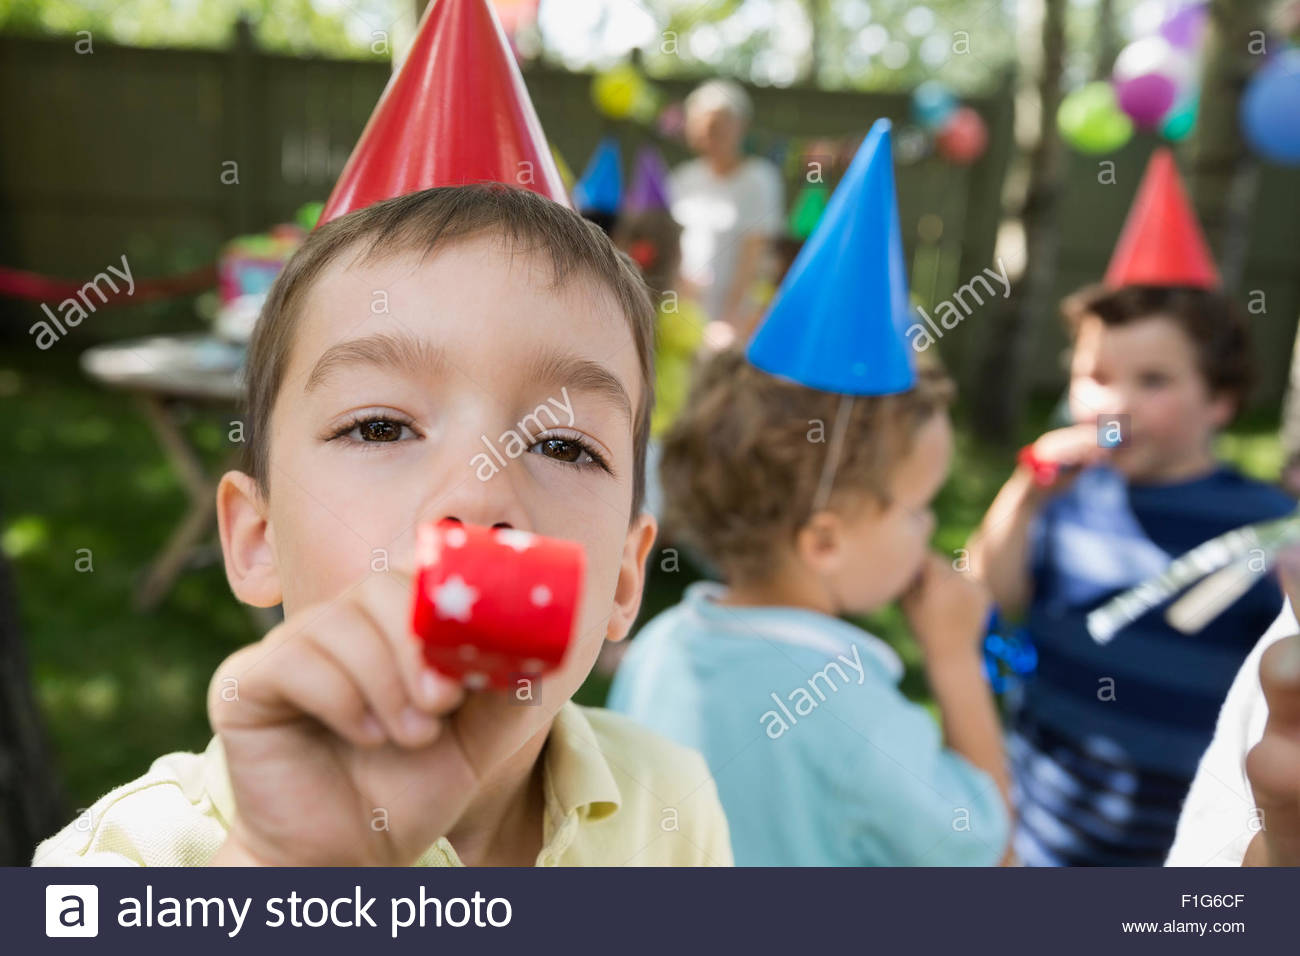 Portrait boy blowing birthday party favor - Stock Image